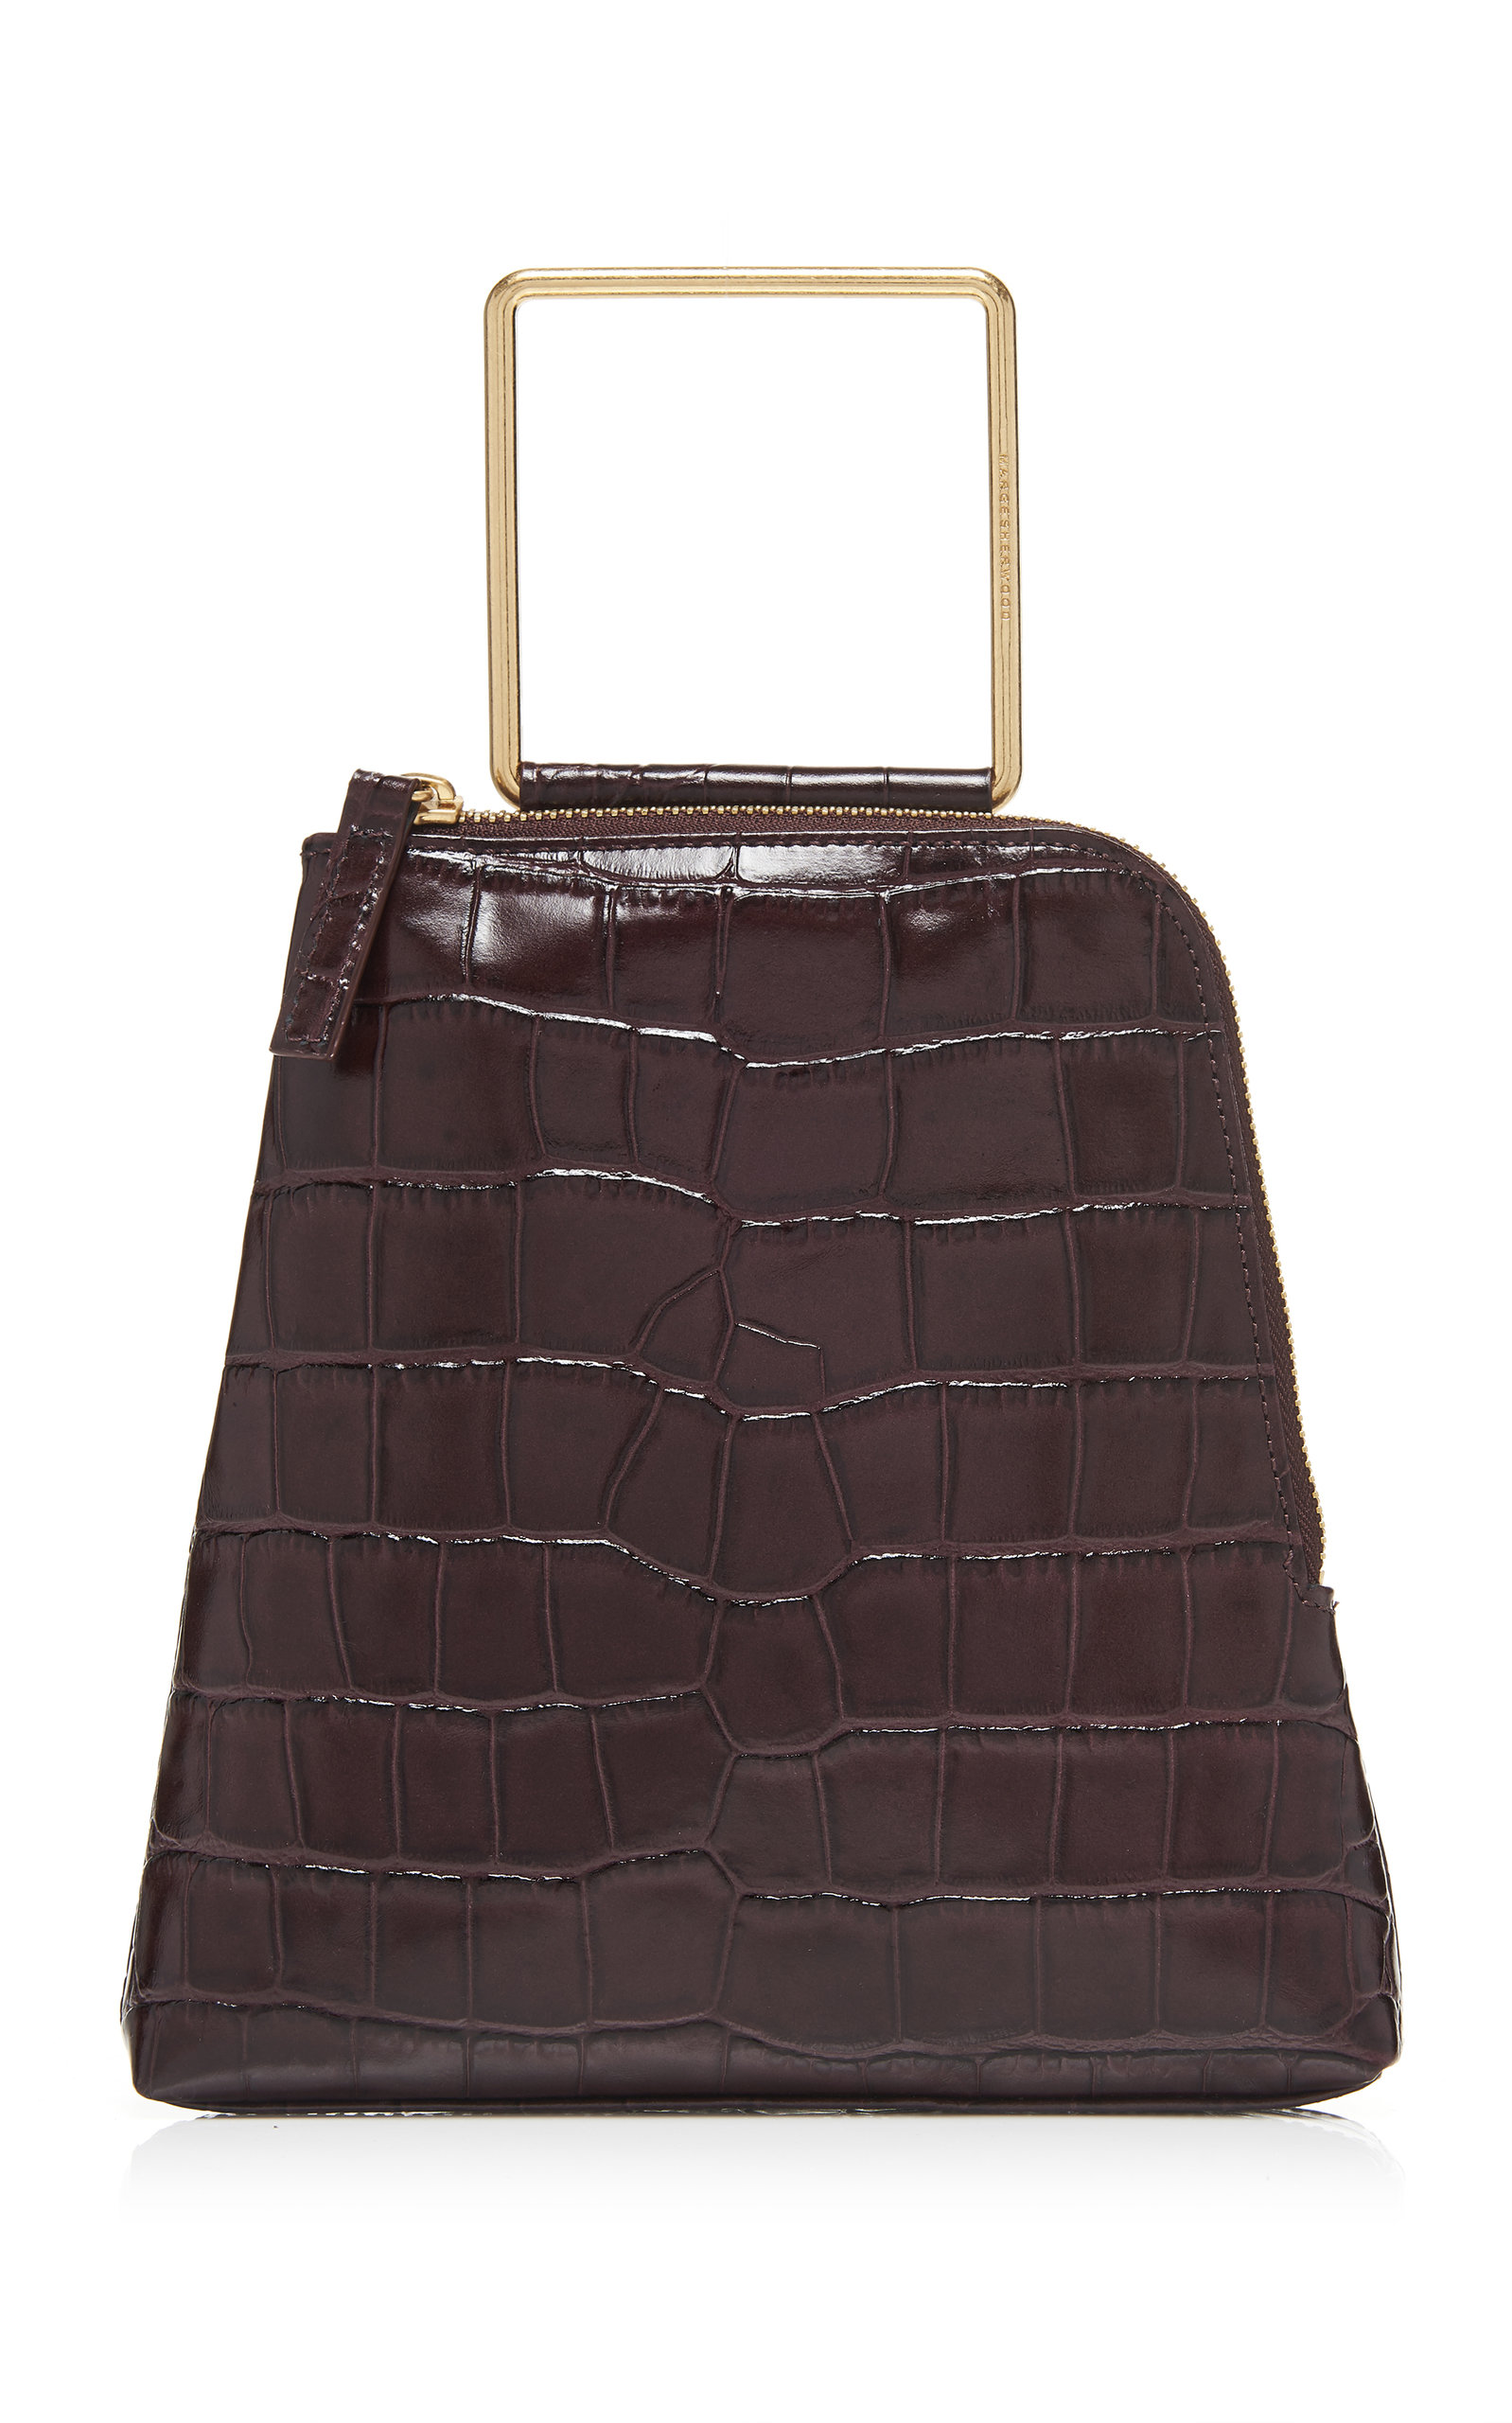 Marge Sherwood Breeze Croc-effect Leather Top Handle Bag In Burgundy